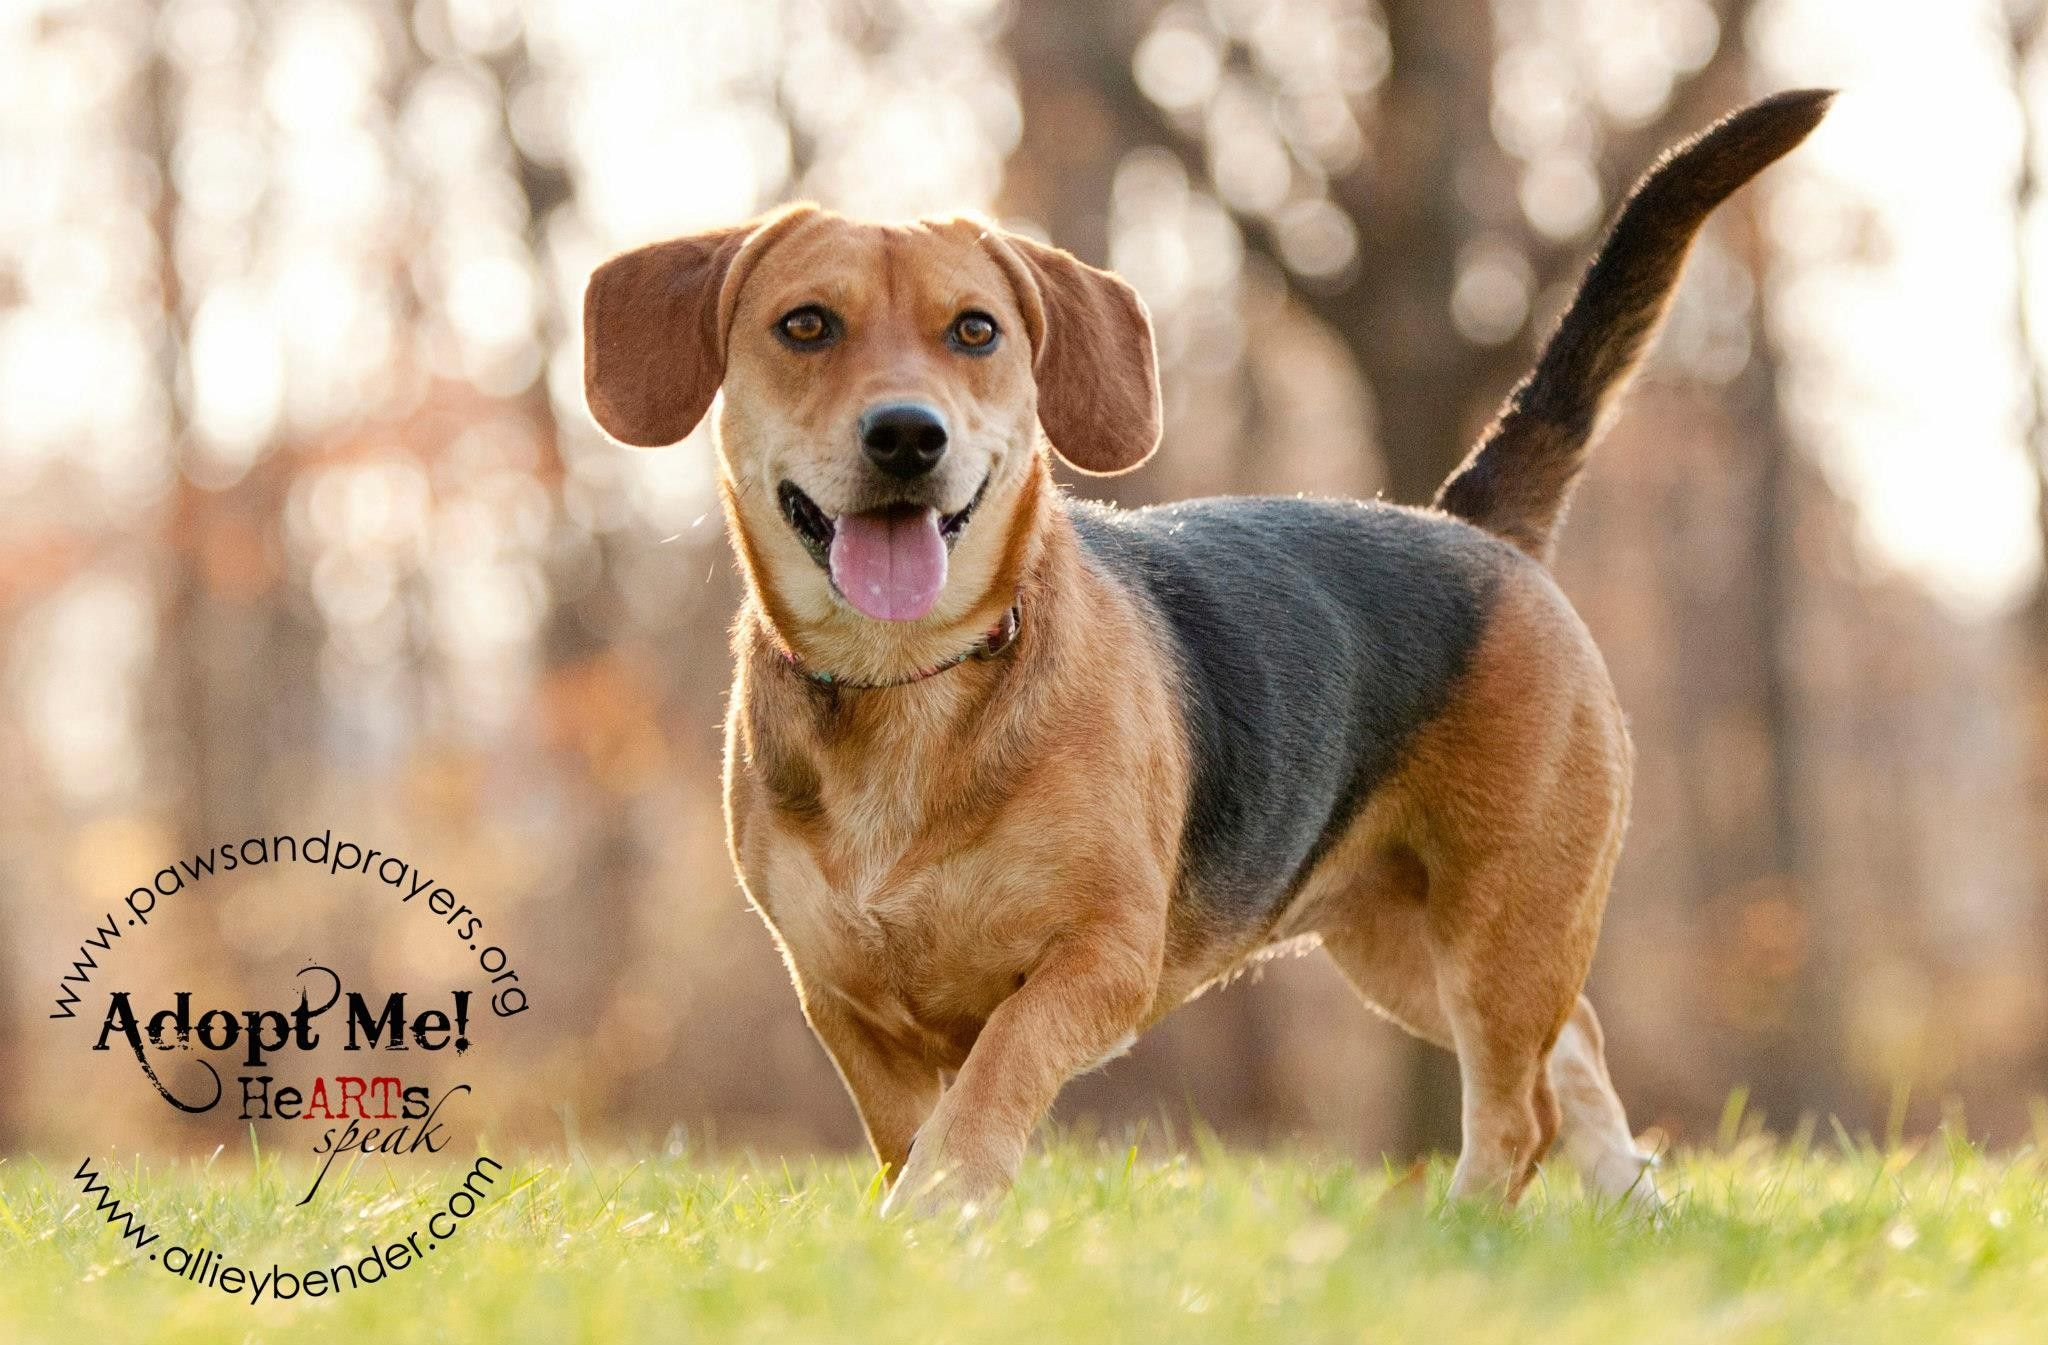 Jenny Is A Beagle Dachshund Mix About 1 1 2 Years Old She S Located In Ohio And Hoping To Find A Forever Home With A Fenced I Dachshund Mix Dogs Save Animals